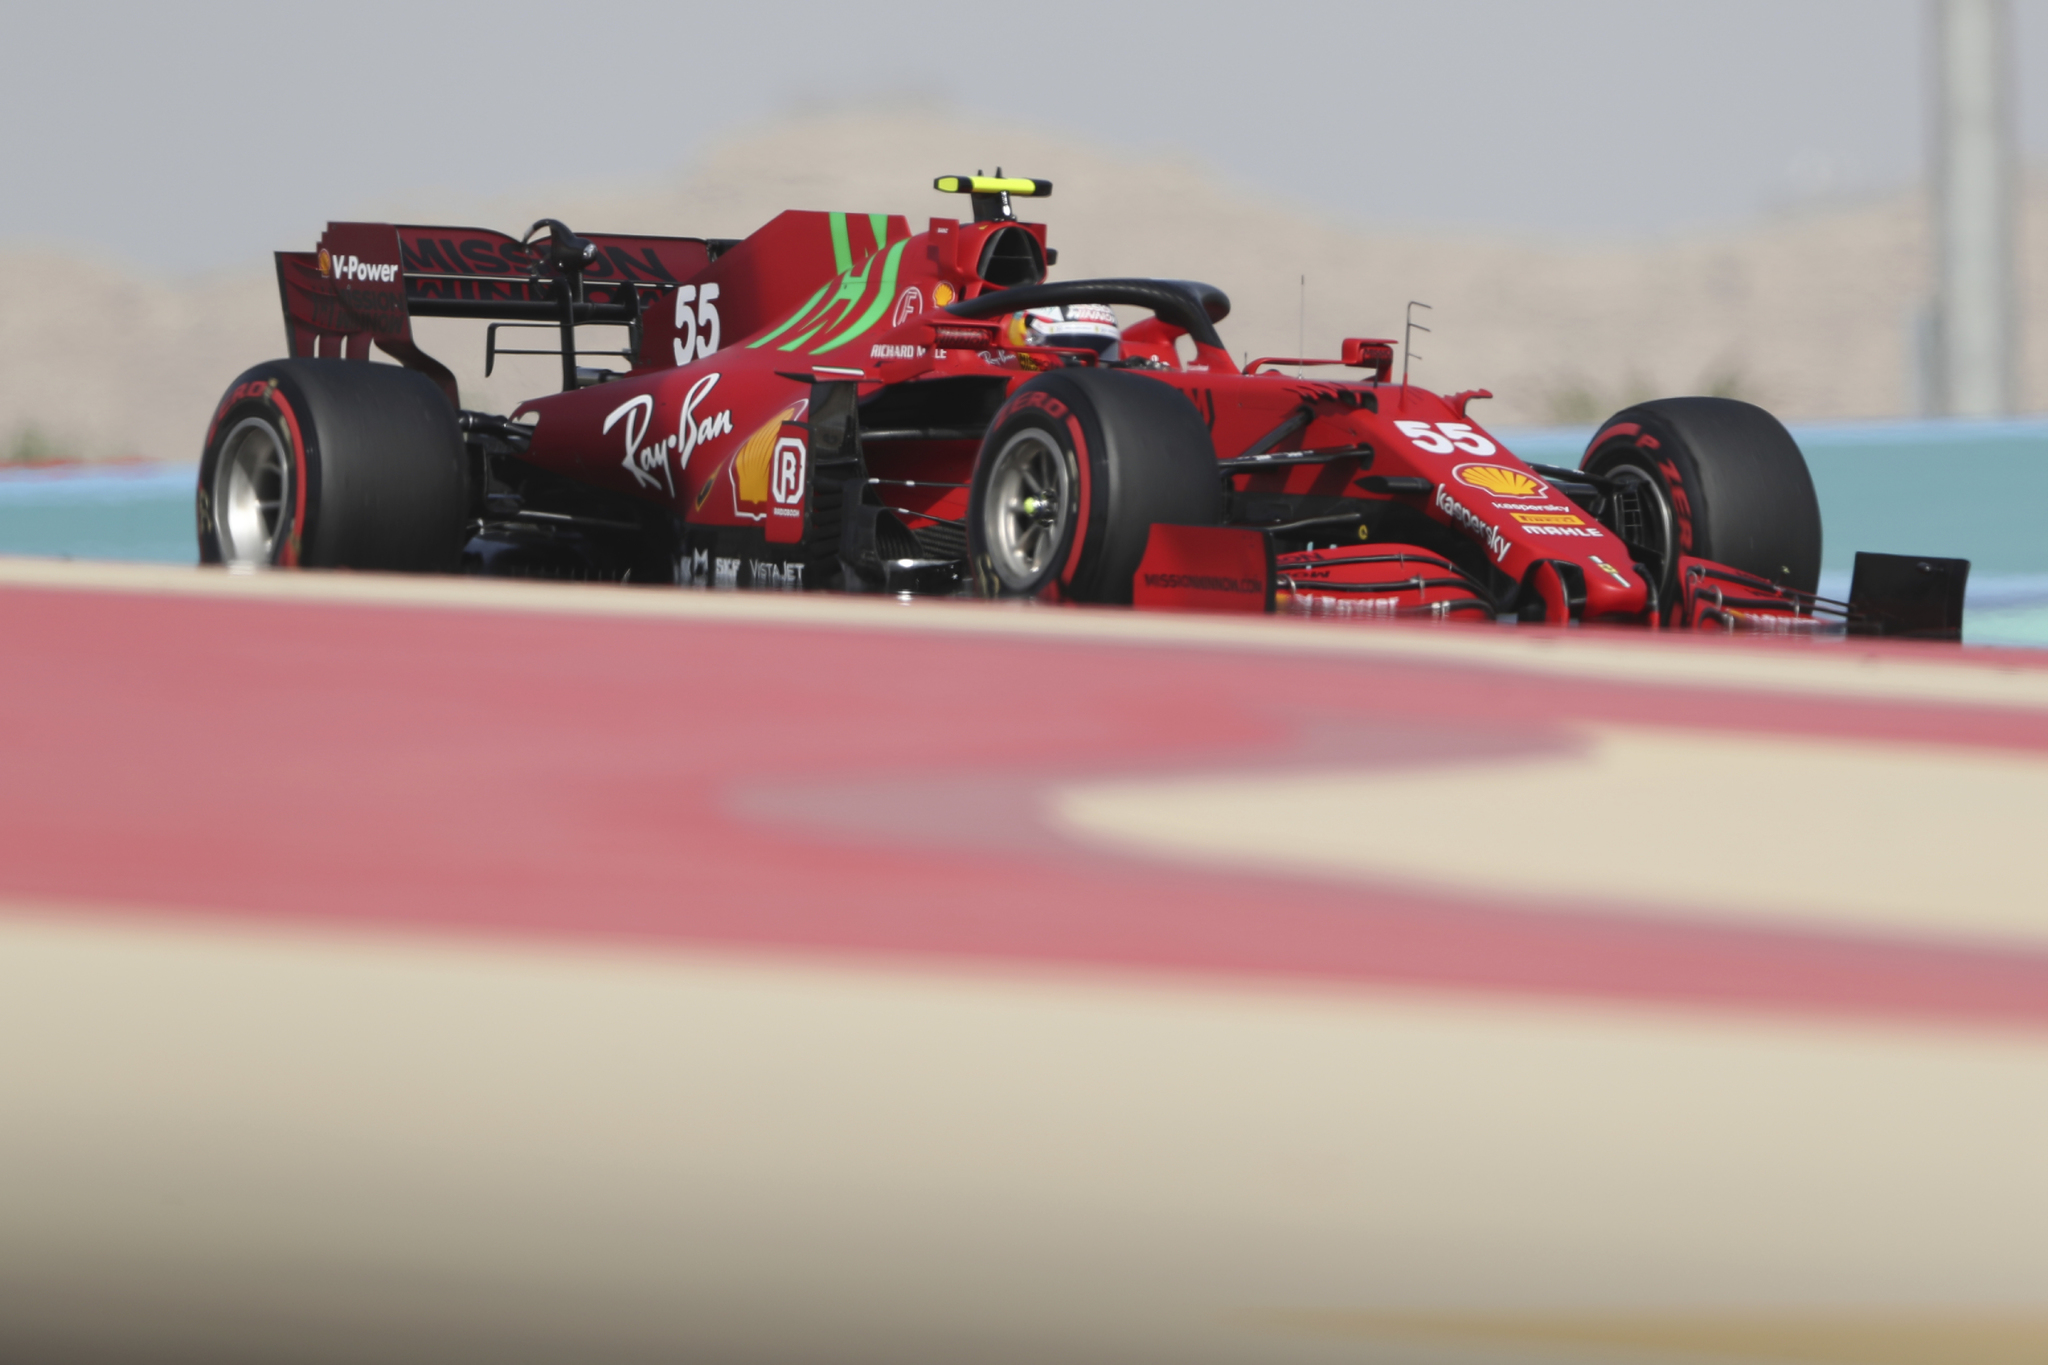 Ferrari driver lt;HIT gt;Carlos lt;/HIT gt; lt;HIT gt;Sainz lt;/HIT gt; of Spain steers his car during the first free practice at the Formula One Bahrain International Circuit in Sakhir, Bahrain, Friday, March 26, 2021. The Bahrain Formula One Grand Prix will take place on Sunday. (AP Photo/Kamran Jebreili)